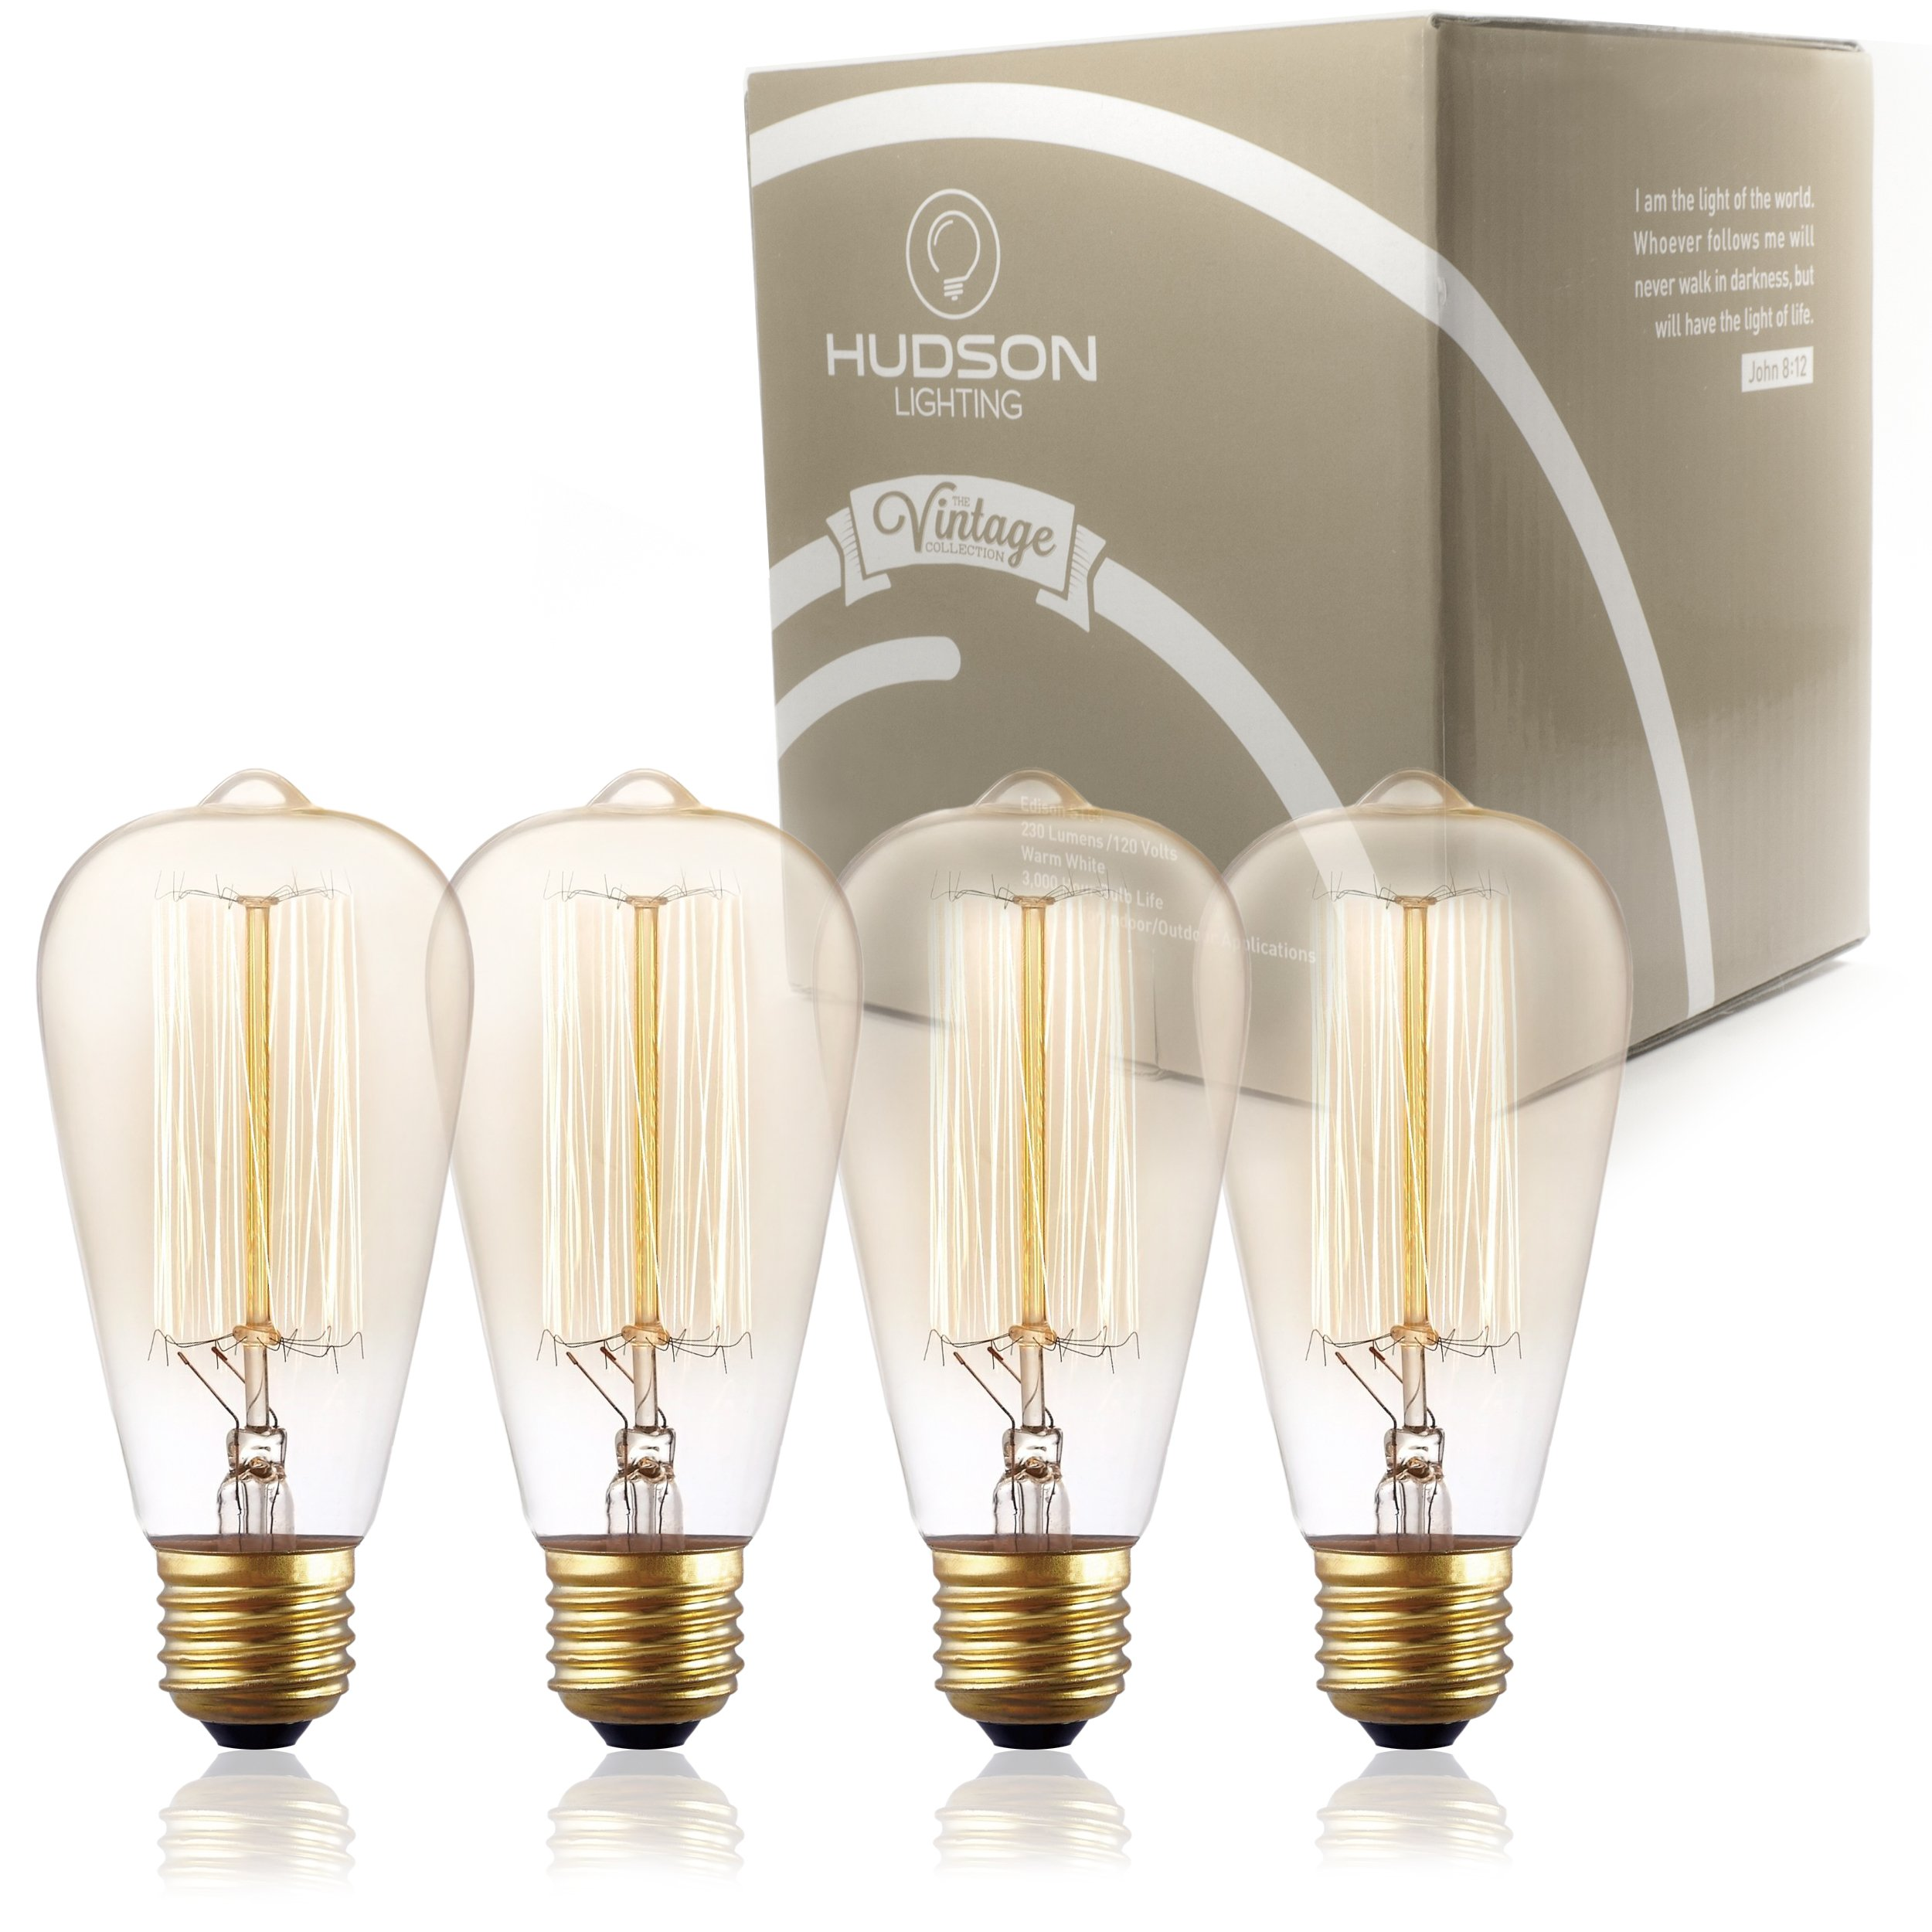 Antique Vintage Edison Bulb ST64 - Hudson Lighting 60 watt Vintage Light Bulb - ST64 - Squirrel Cage Filament - 230 Lumens - Dimmable - E26 Bulb Base – Edison Light Bulbs